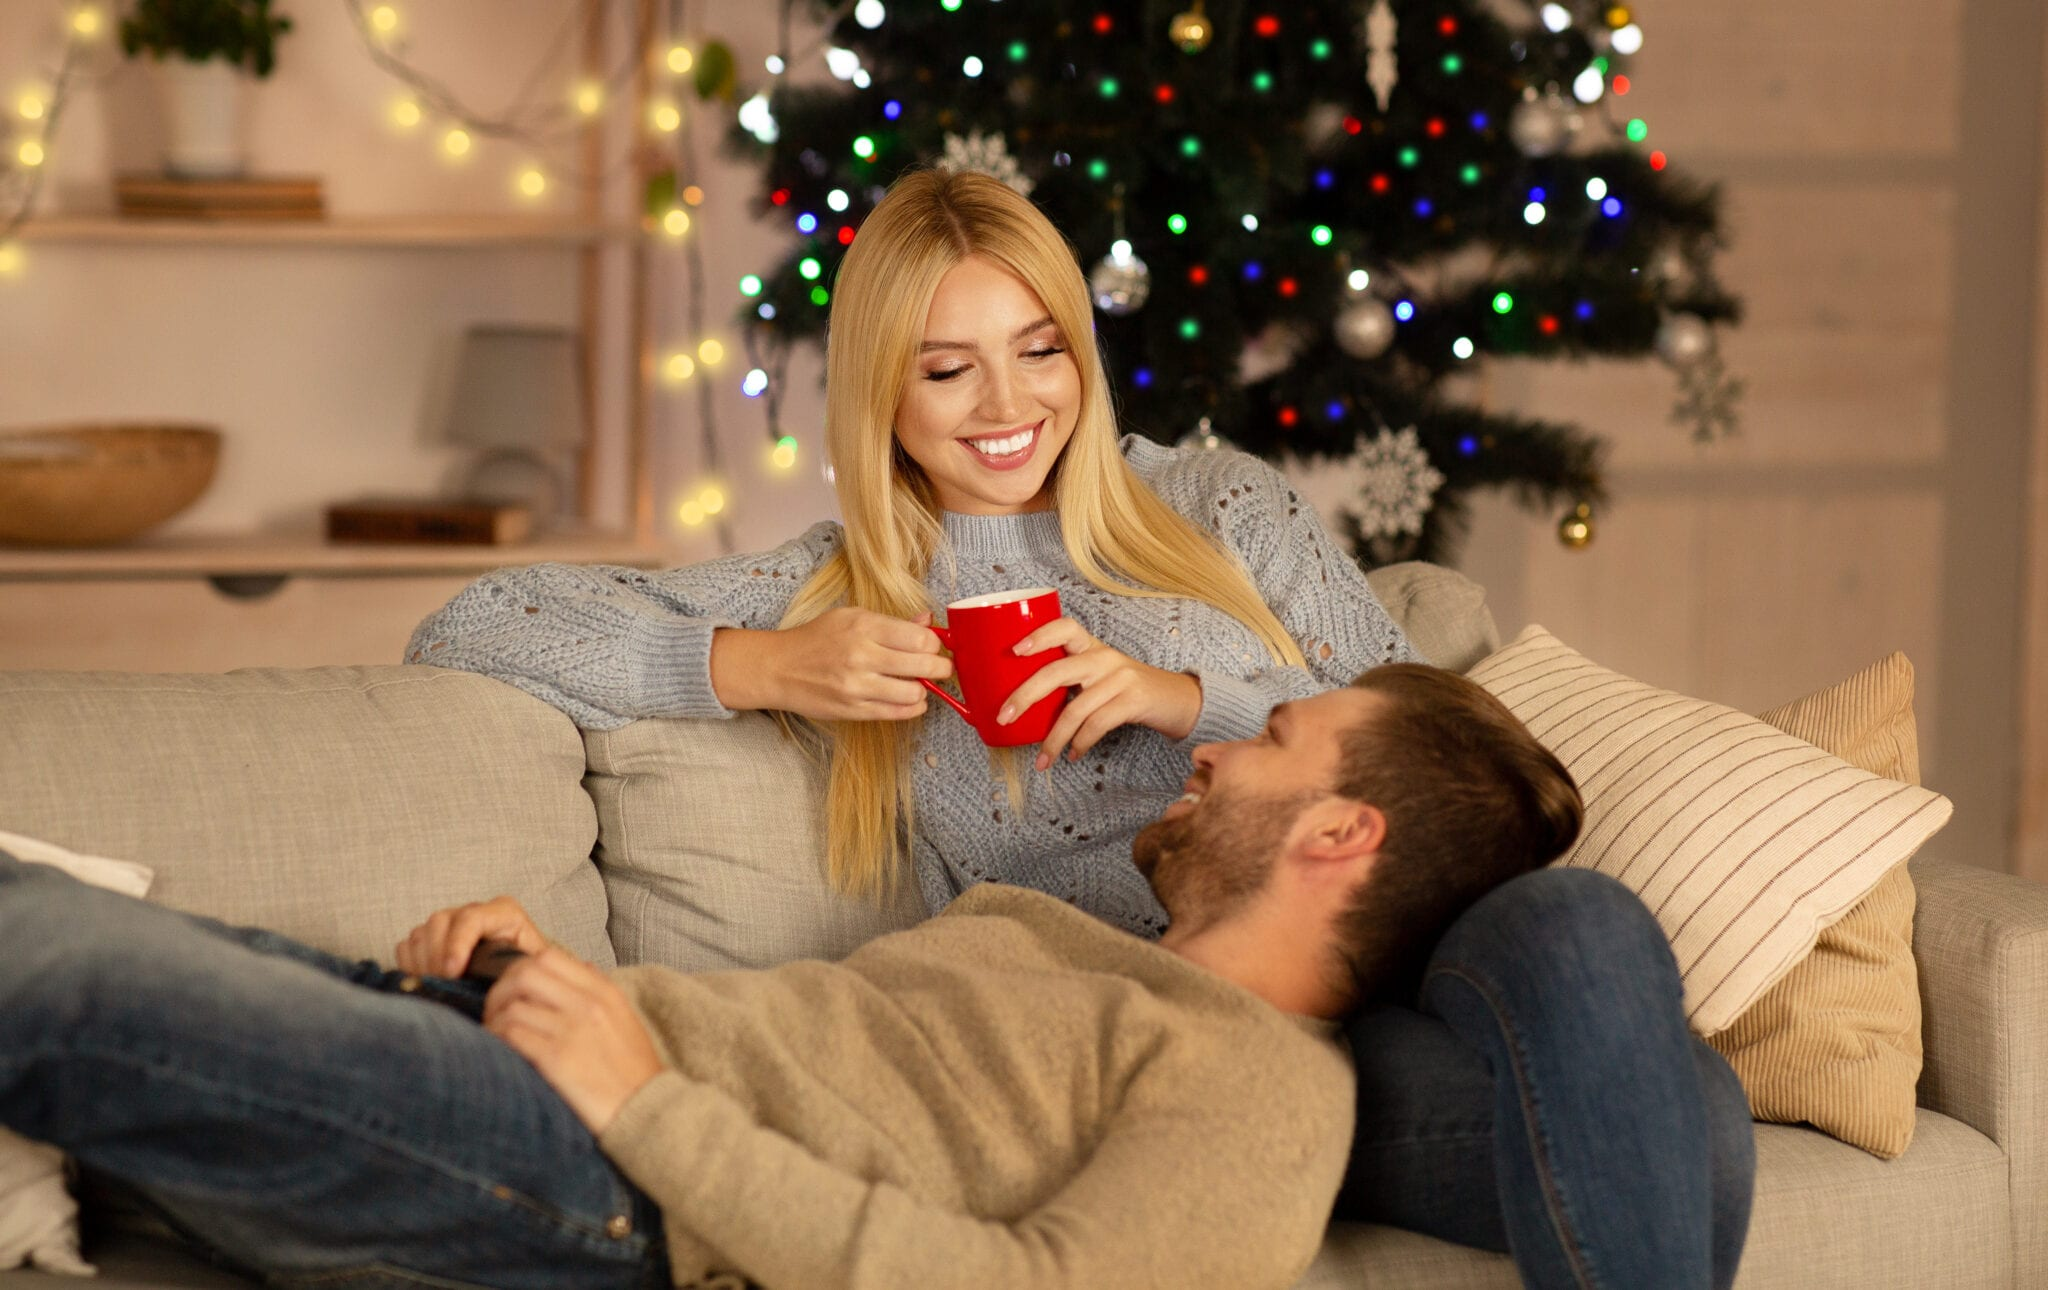 Lovely Couple Relaxing At Home during the holidays